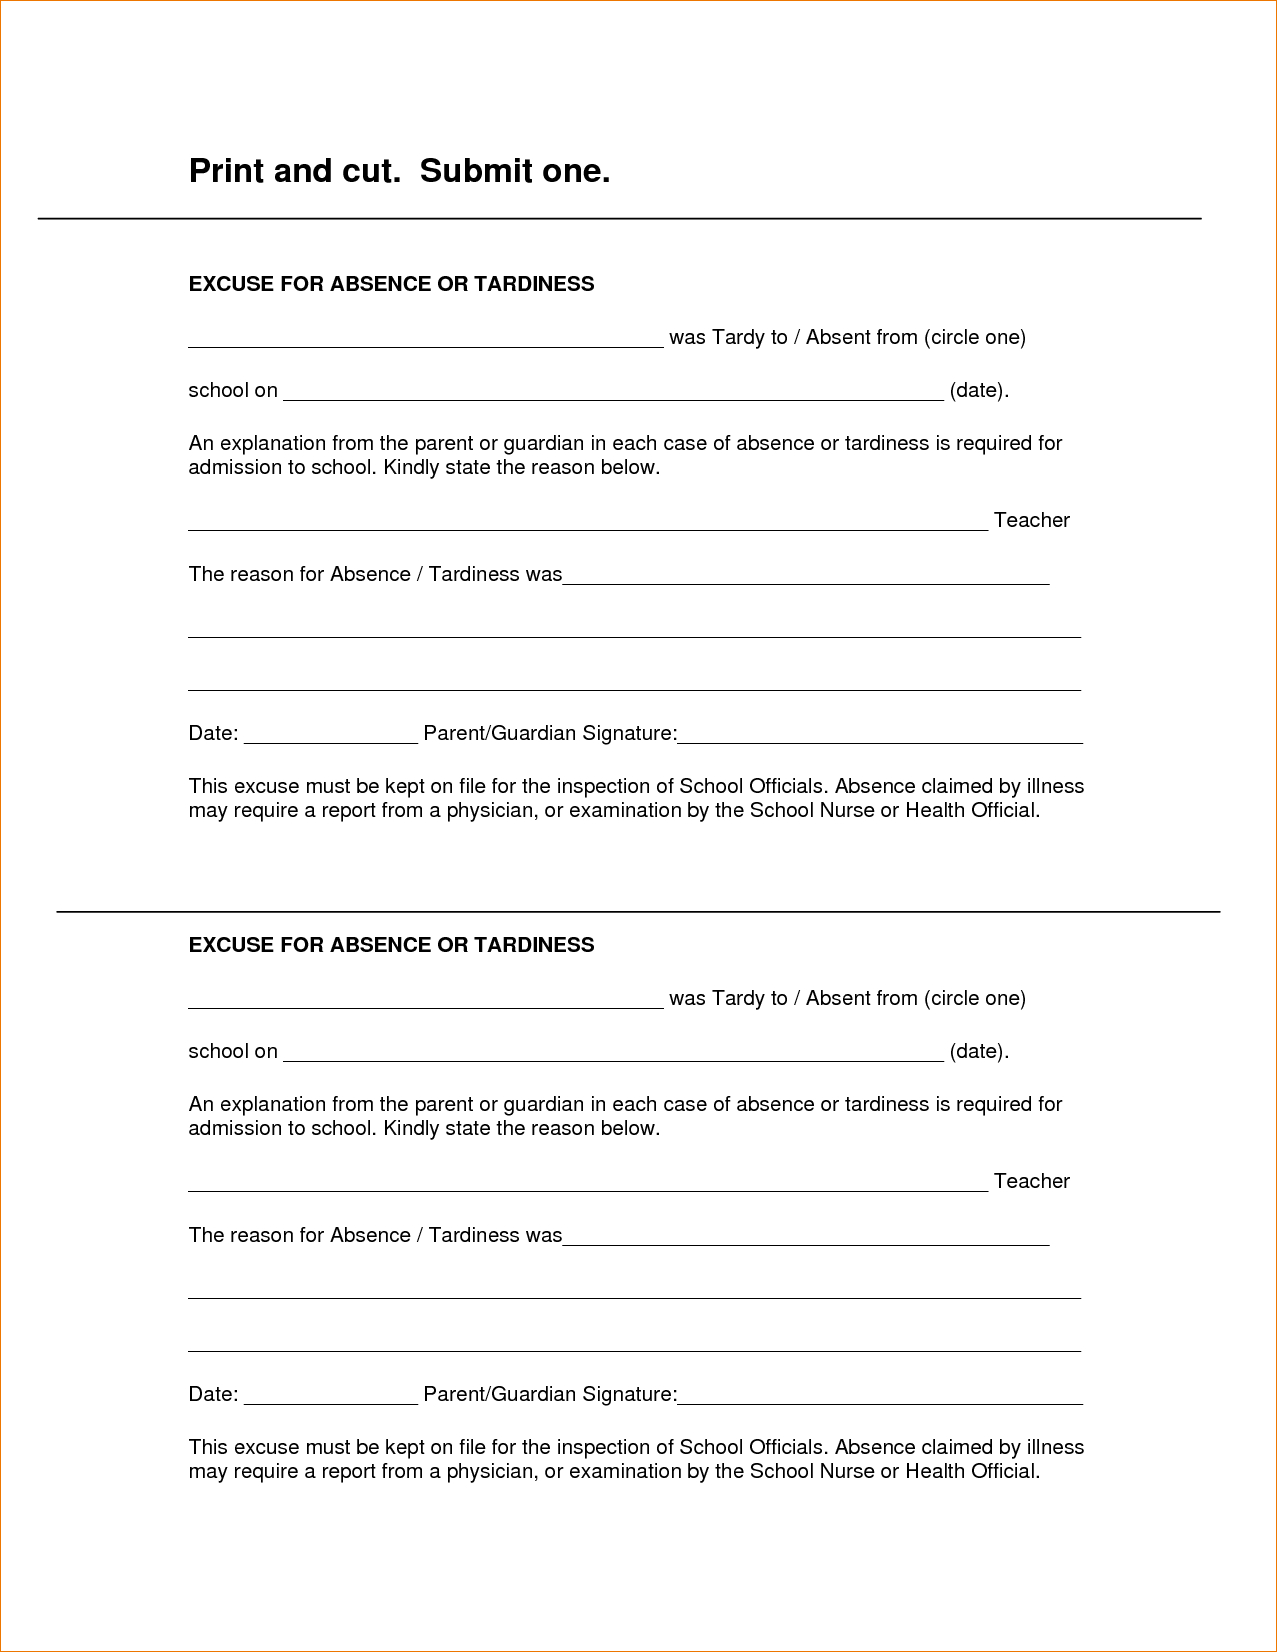 8 Free Printable Doctors Excuse For Workagenda Template Sample - Free Printable Doctor Excuse Notes